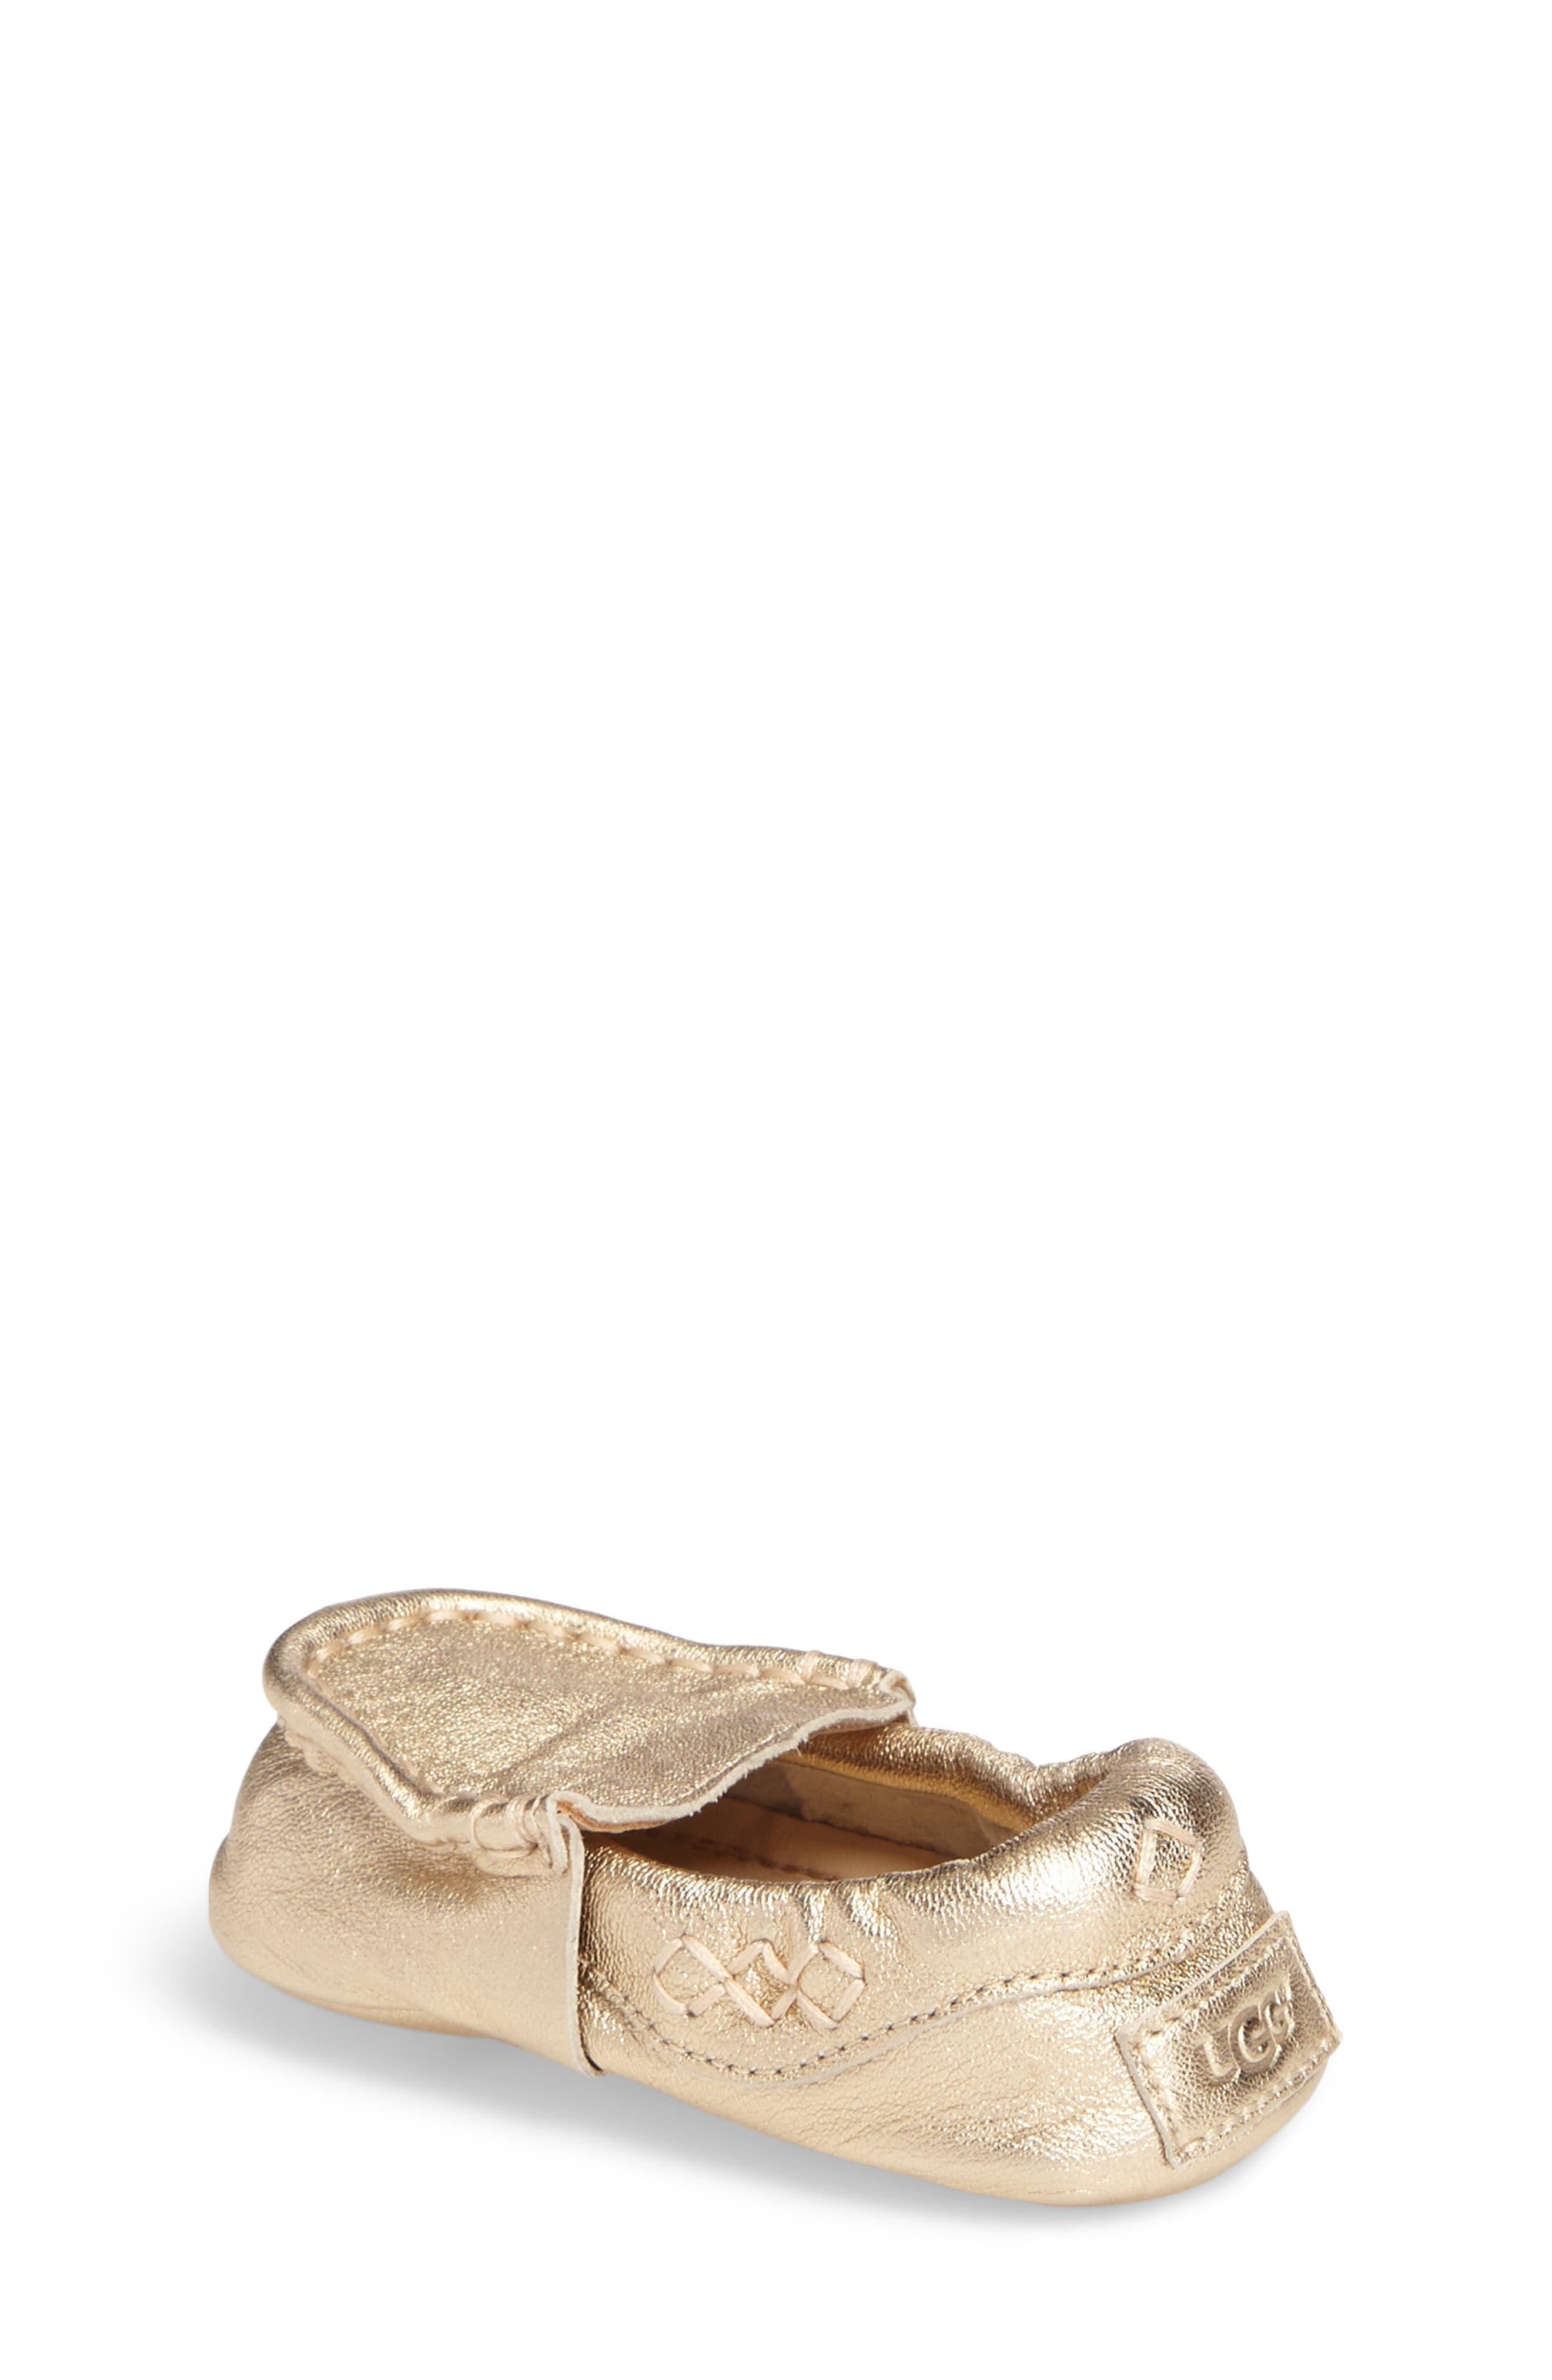 Sivia Metallic Loafer,                             Alternate thumbnail 2, color,                             Gold